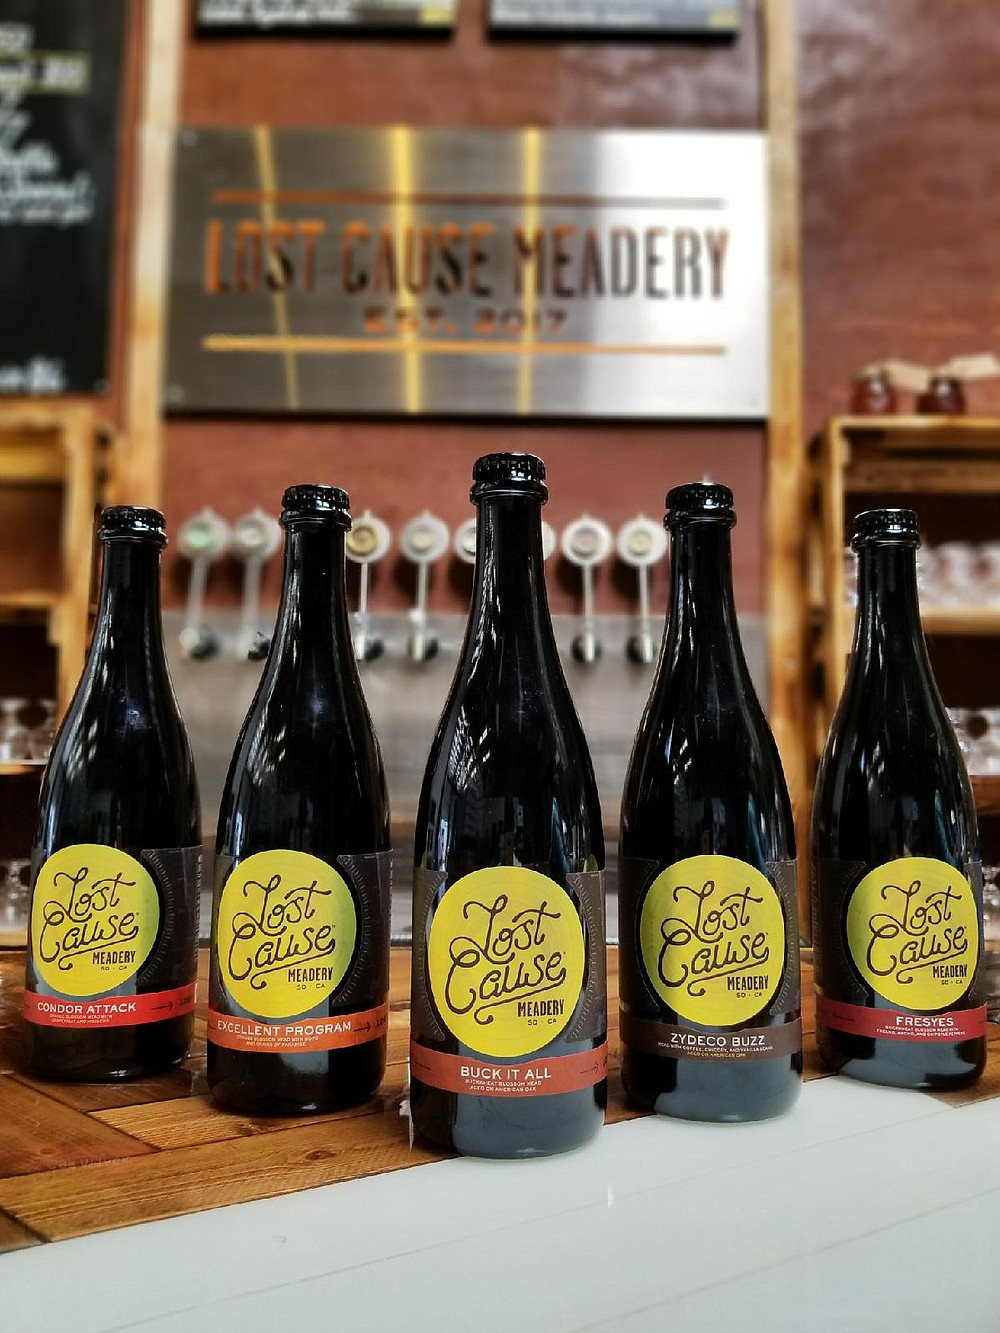 Bottles available from Lost Cause Meadery